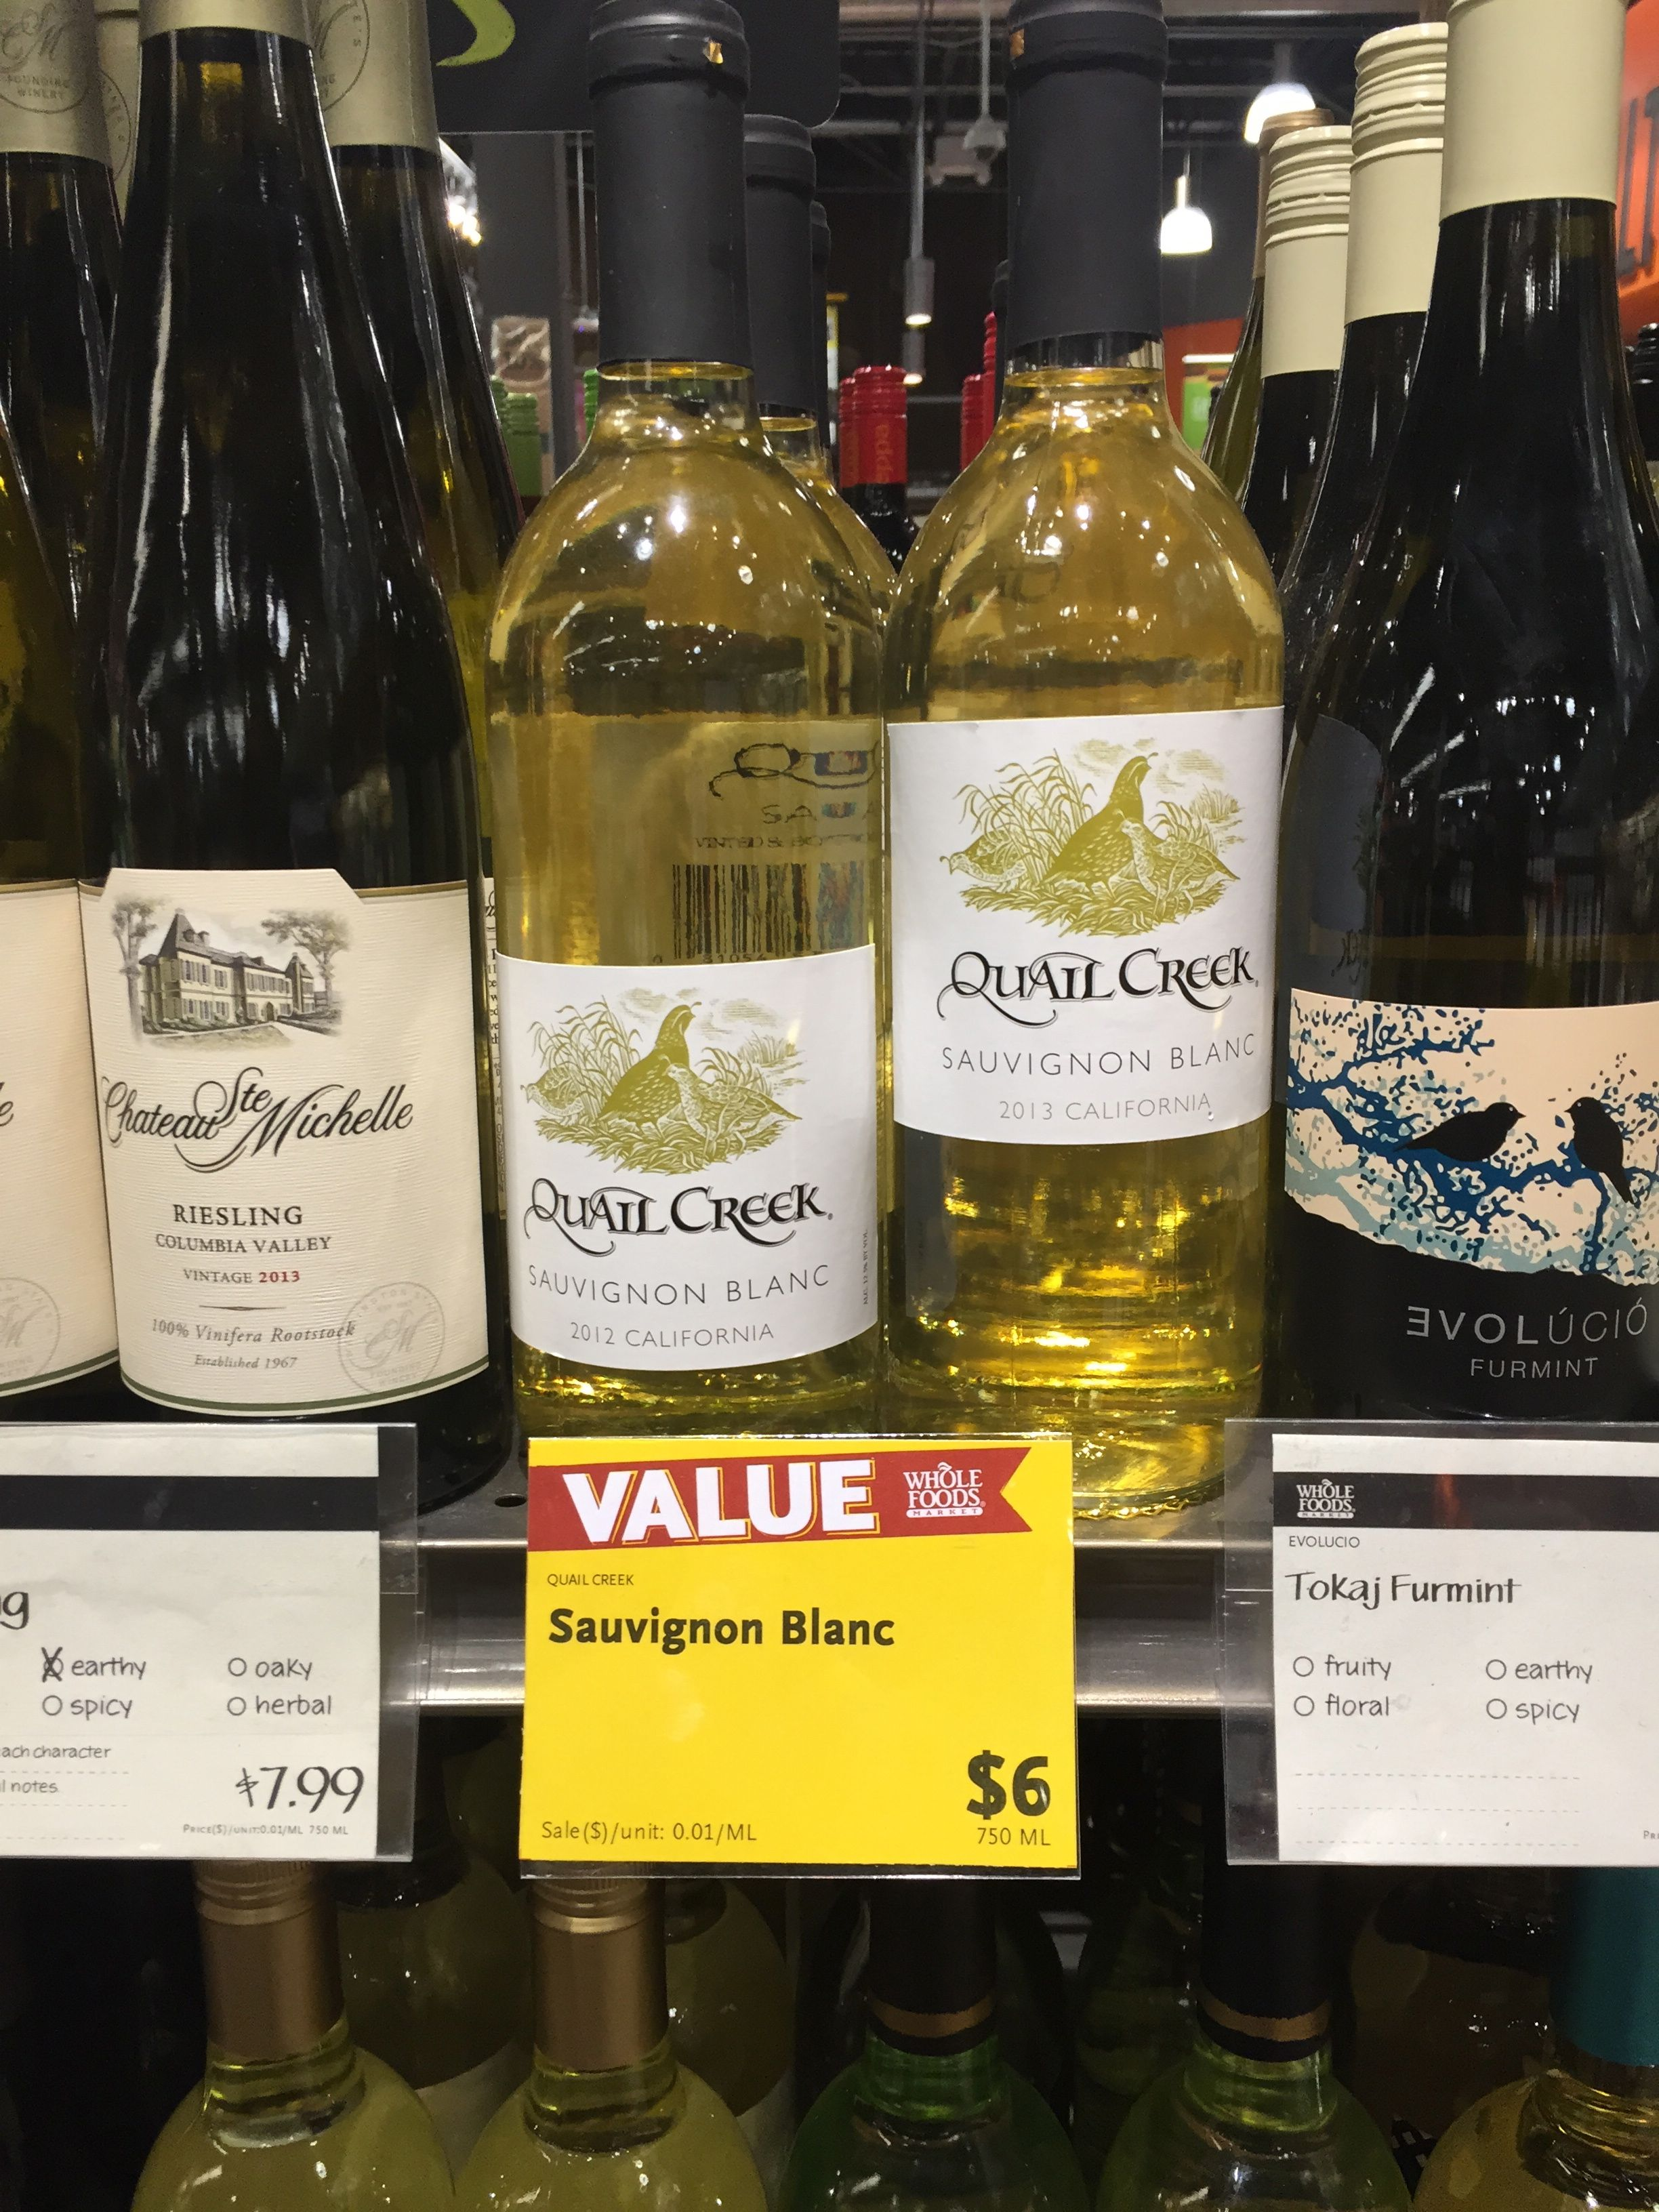 Whole Foods Wines Under